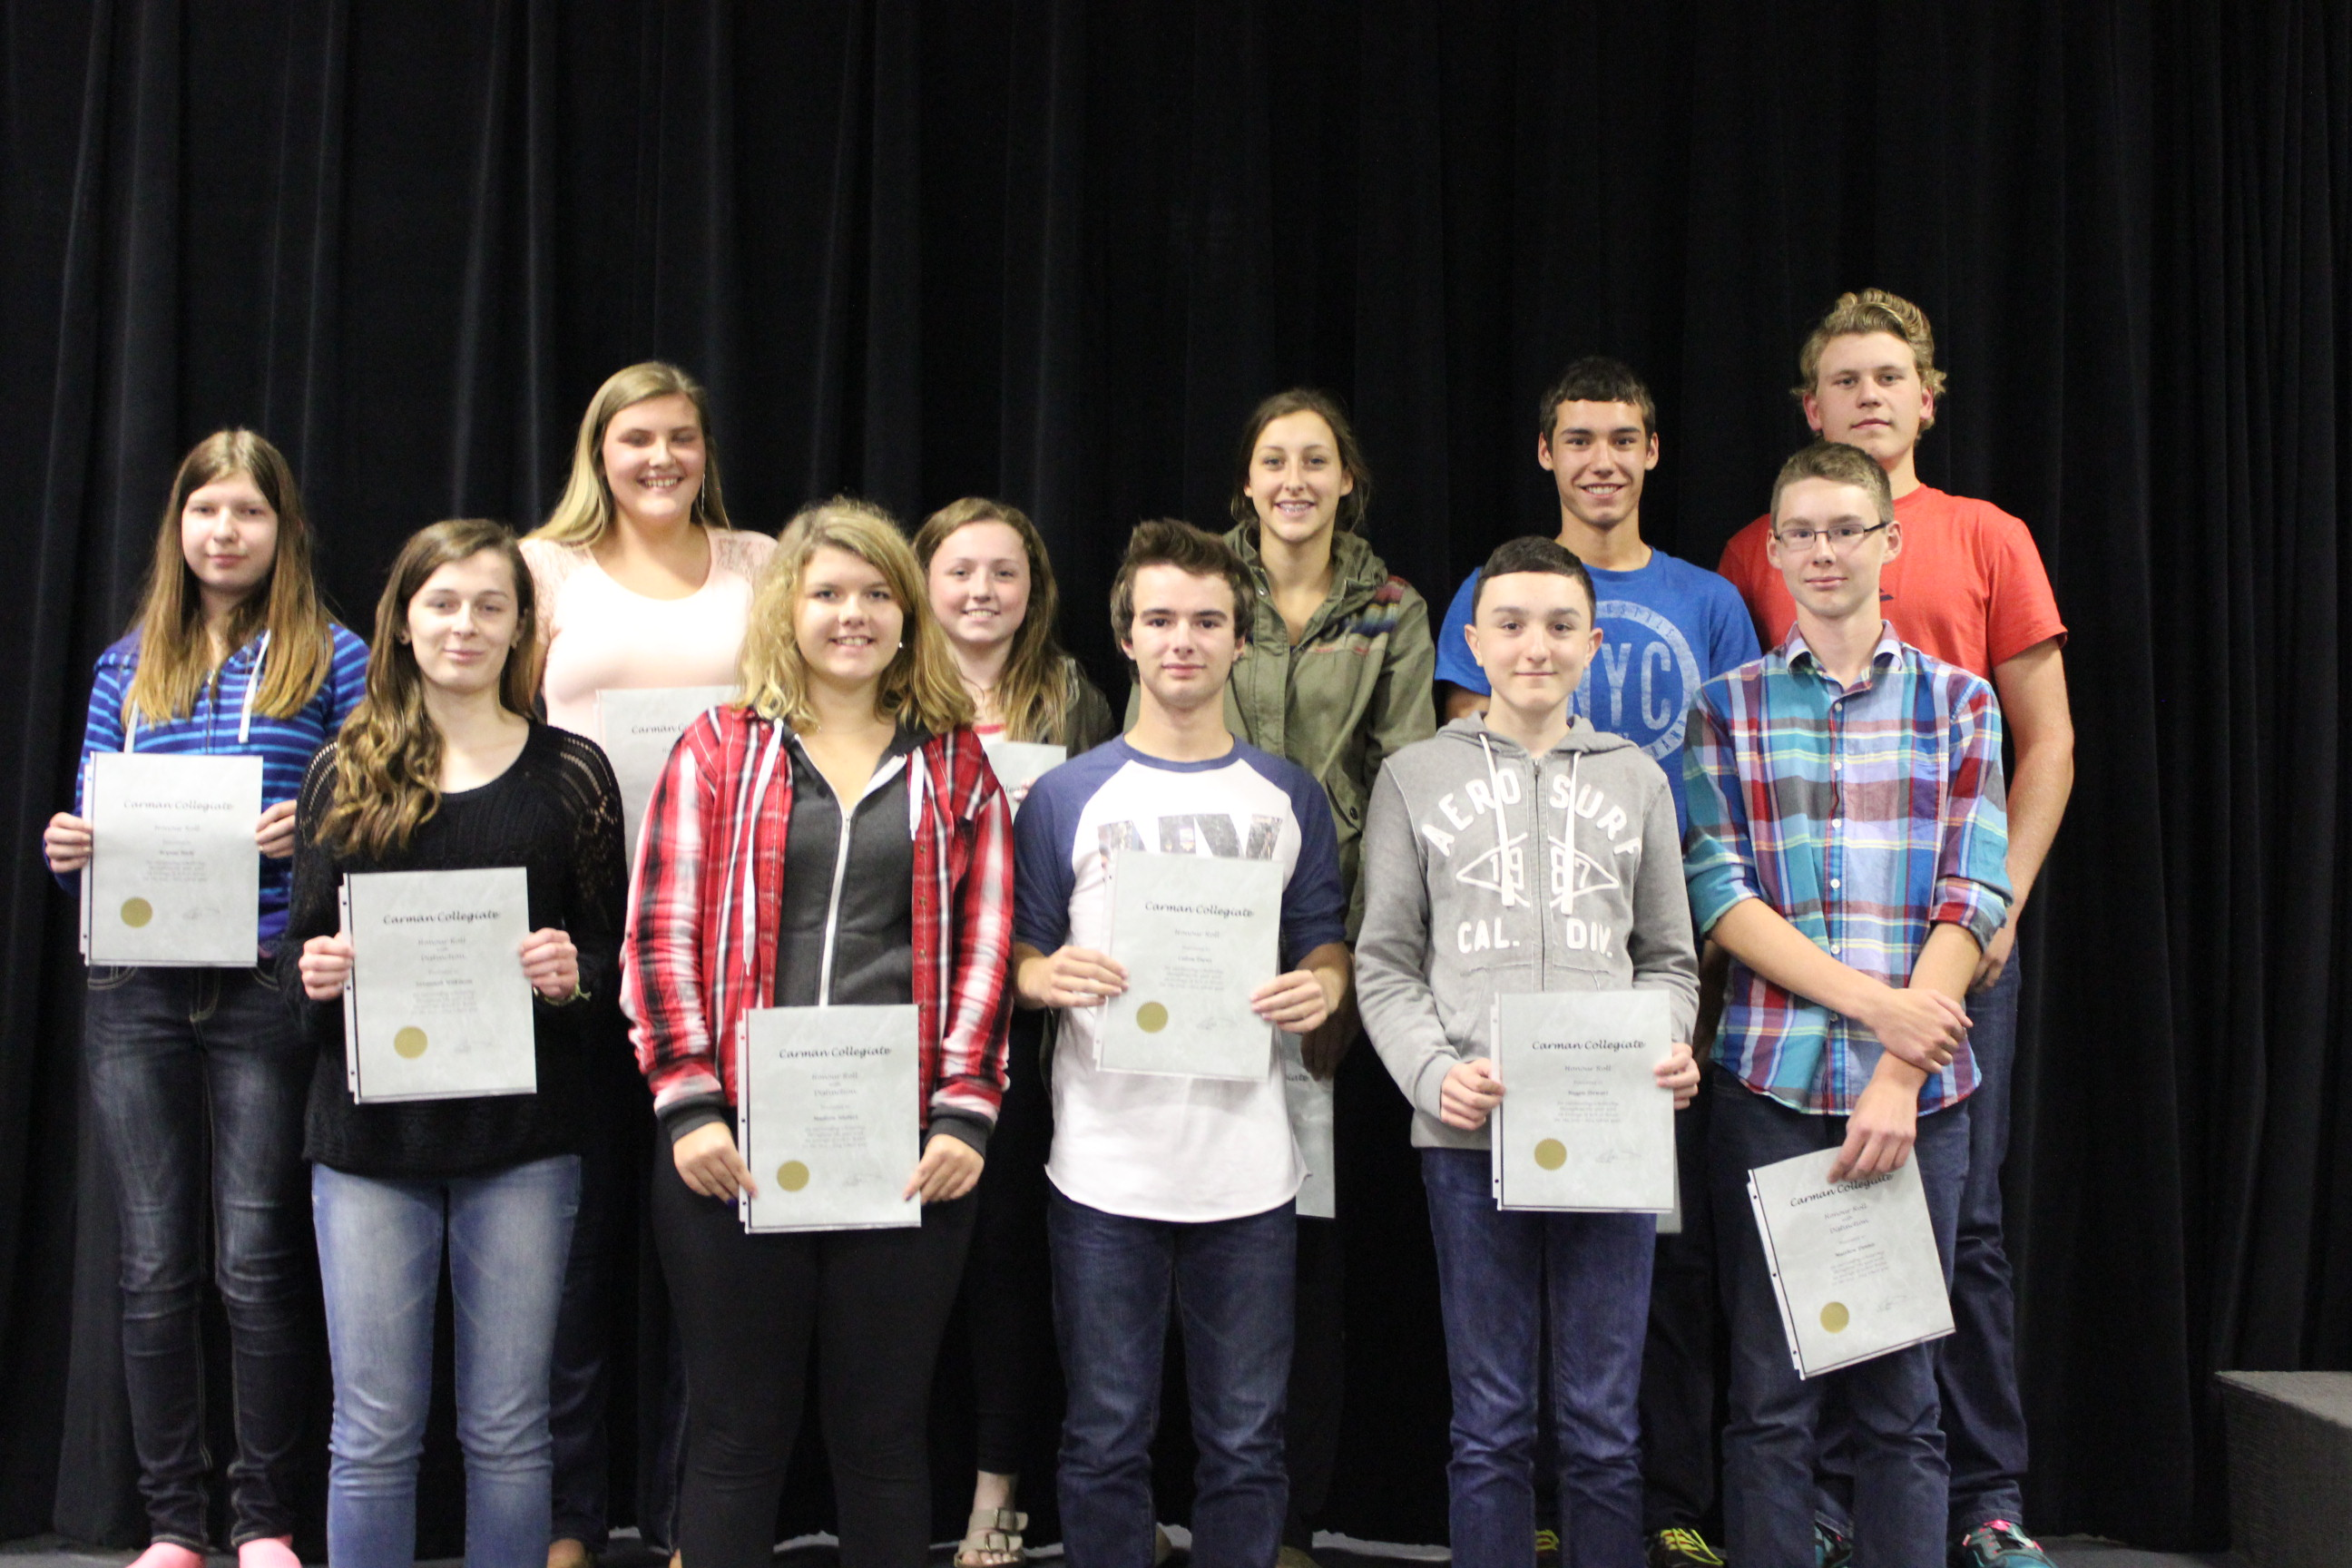 2014 09 18 - CC Honour Roll Students1